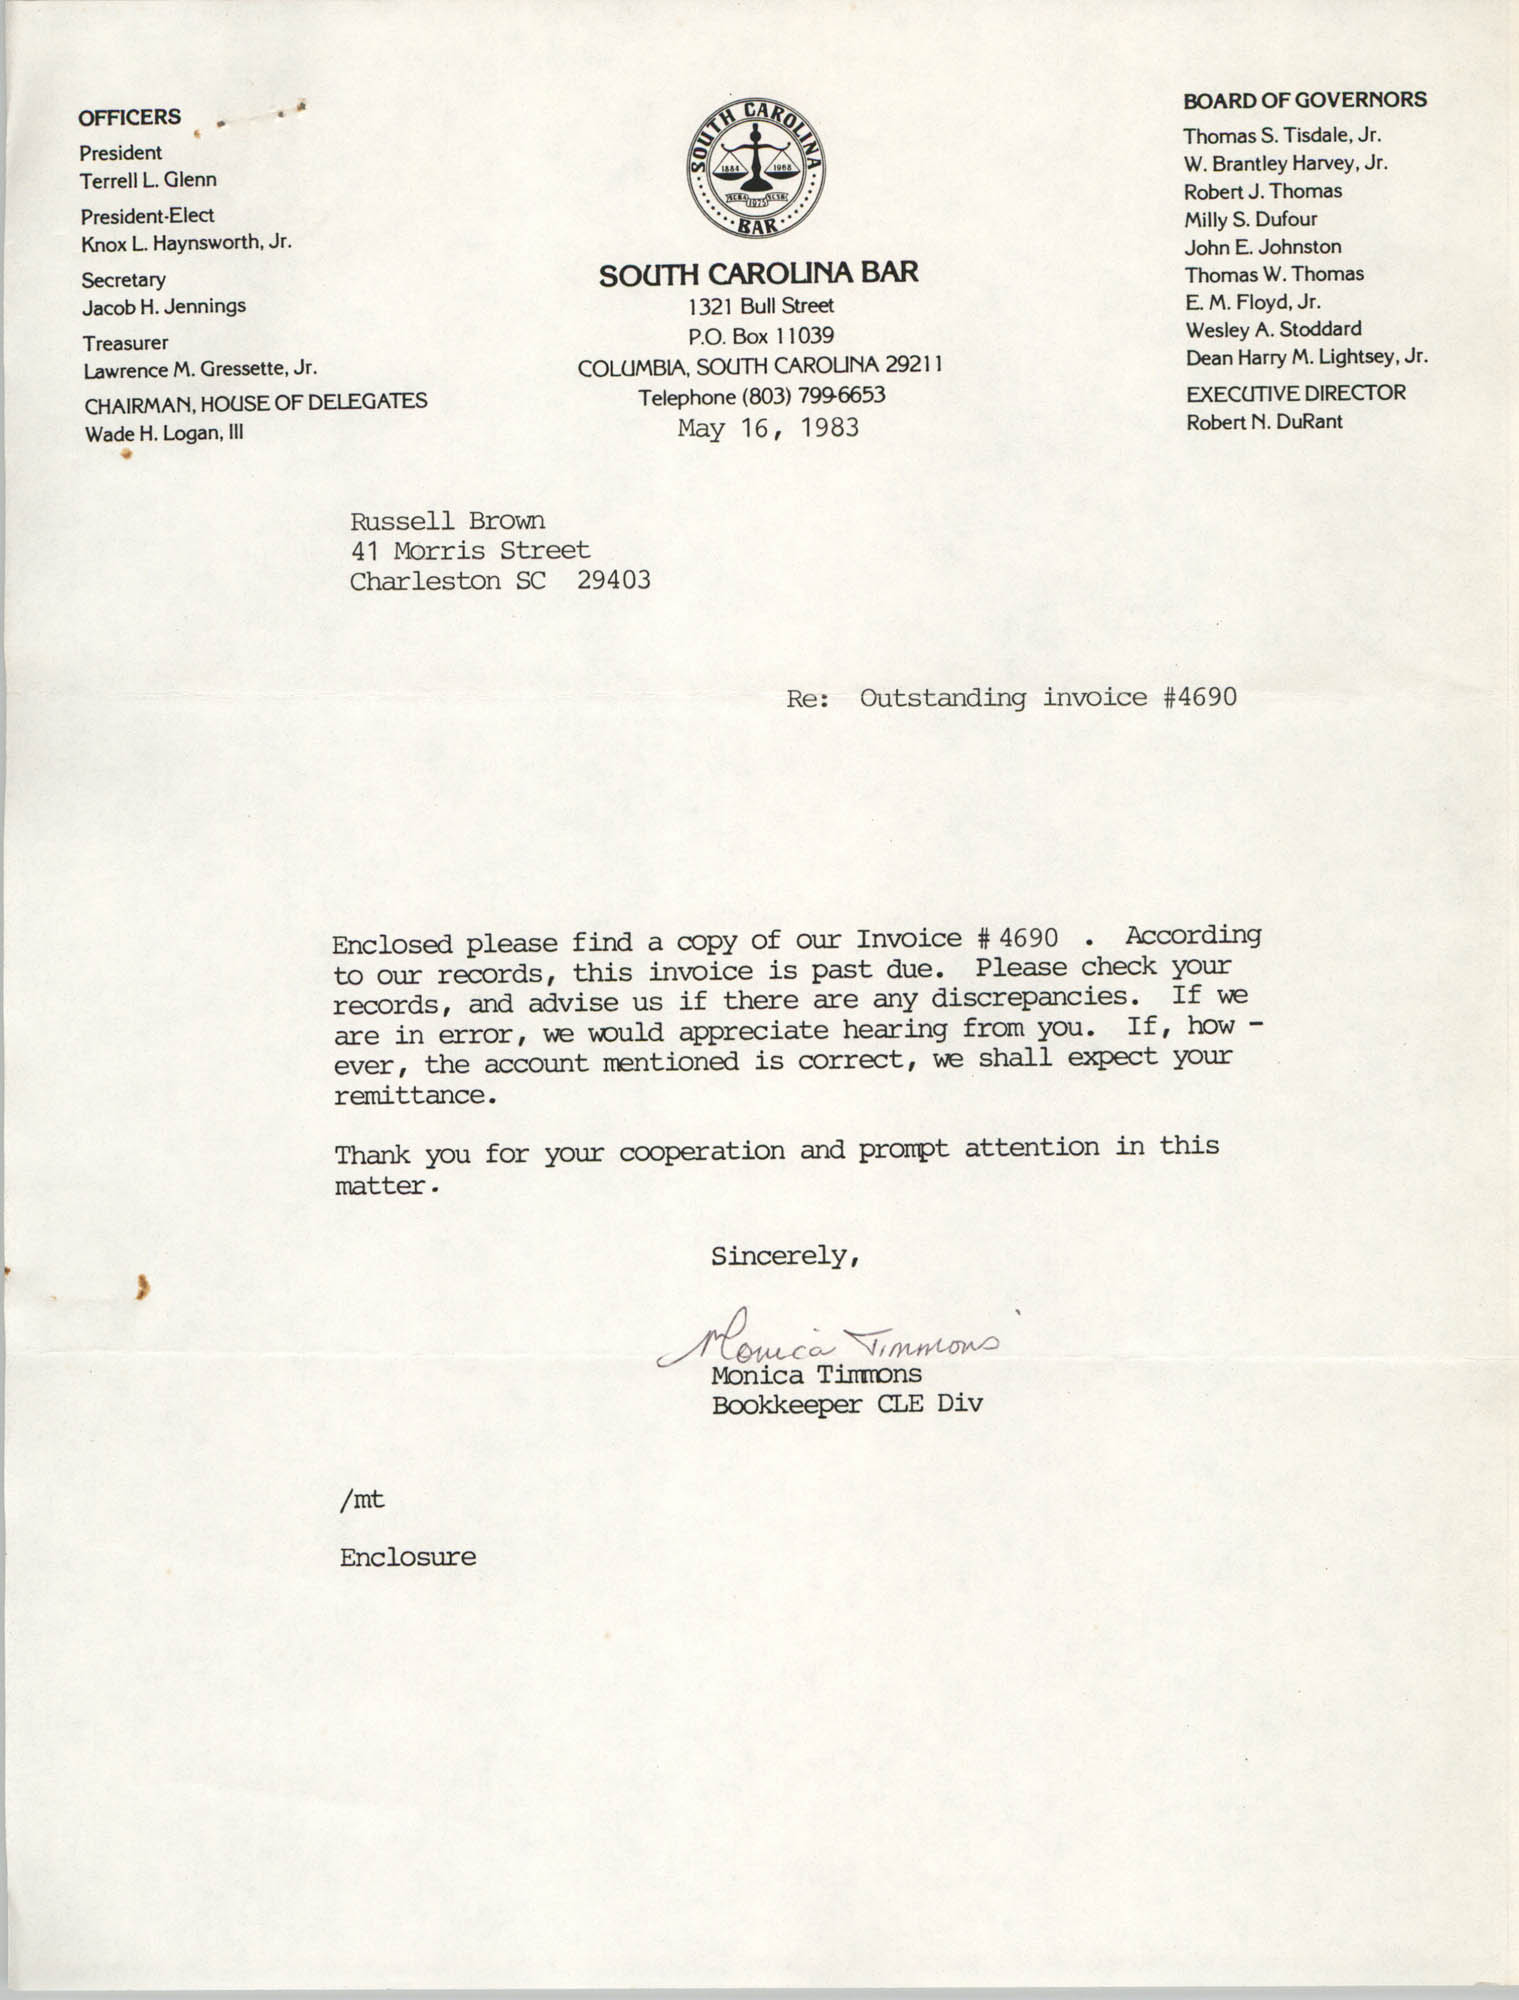 Letter from Monica Timmons to Russell Brown, May 16, 1983